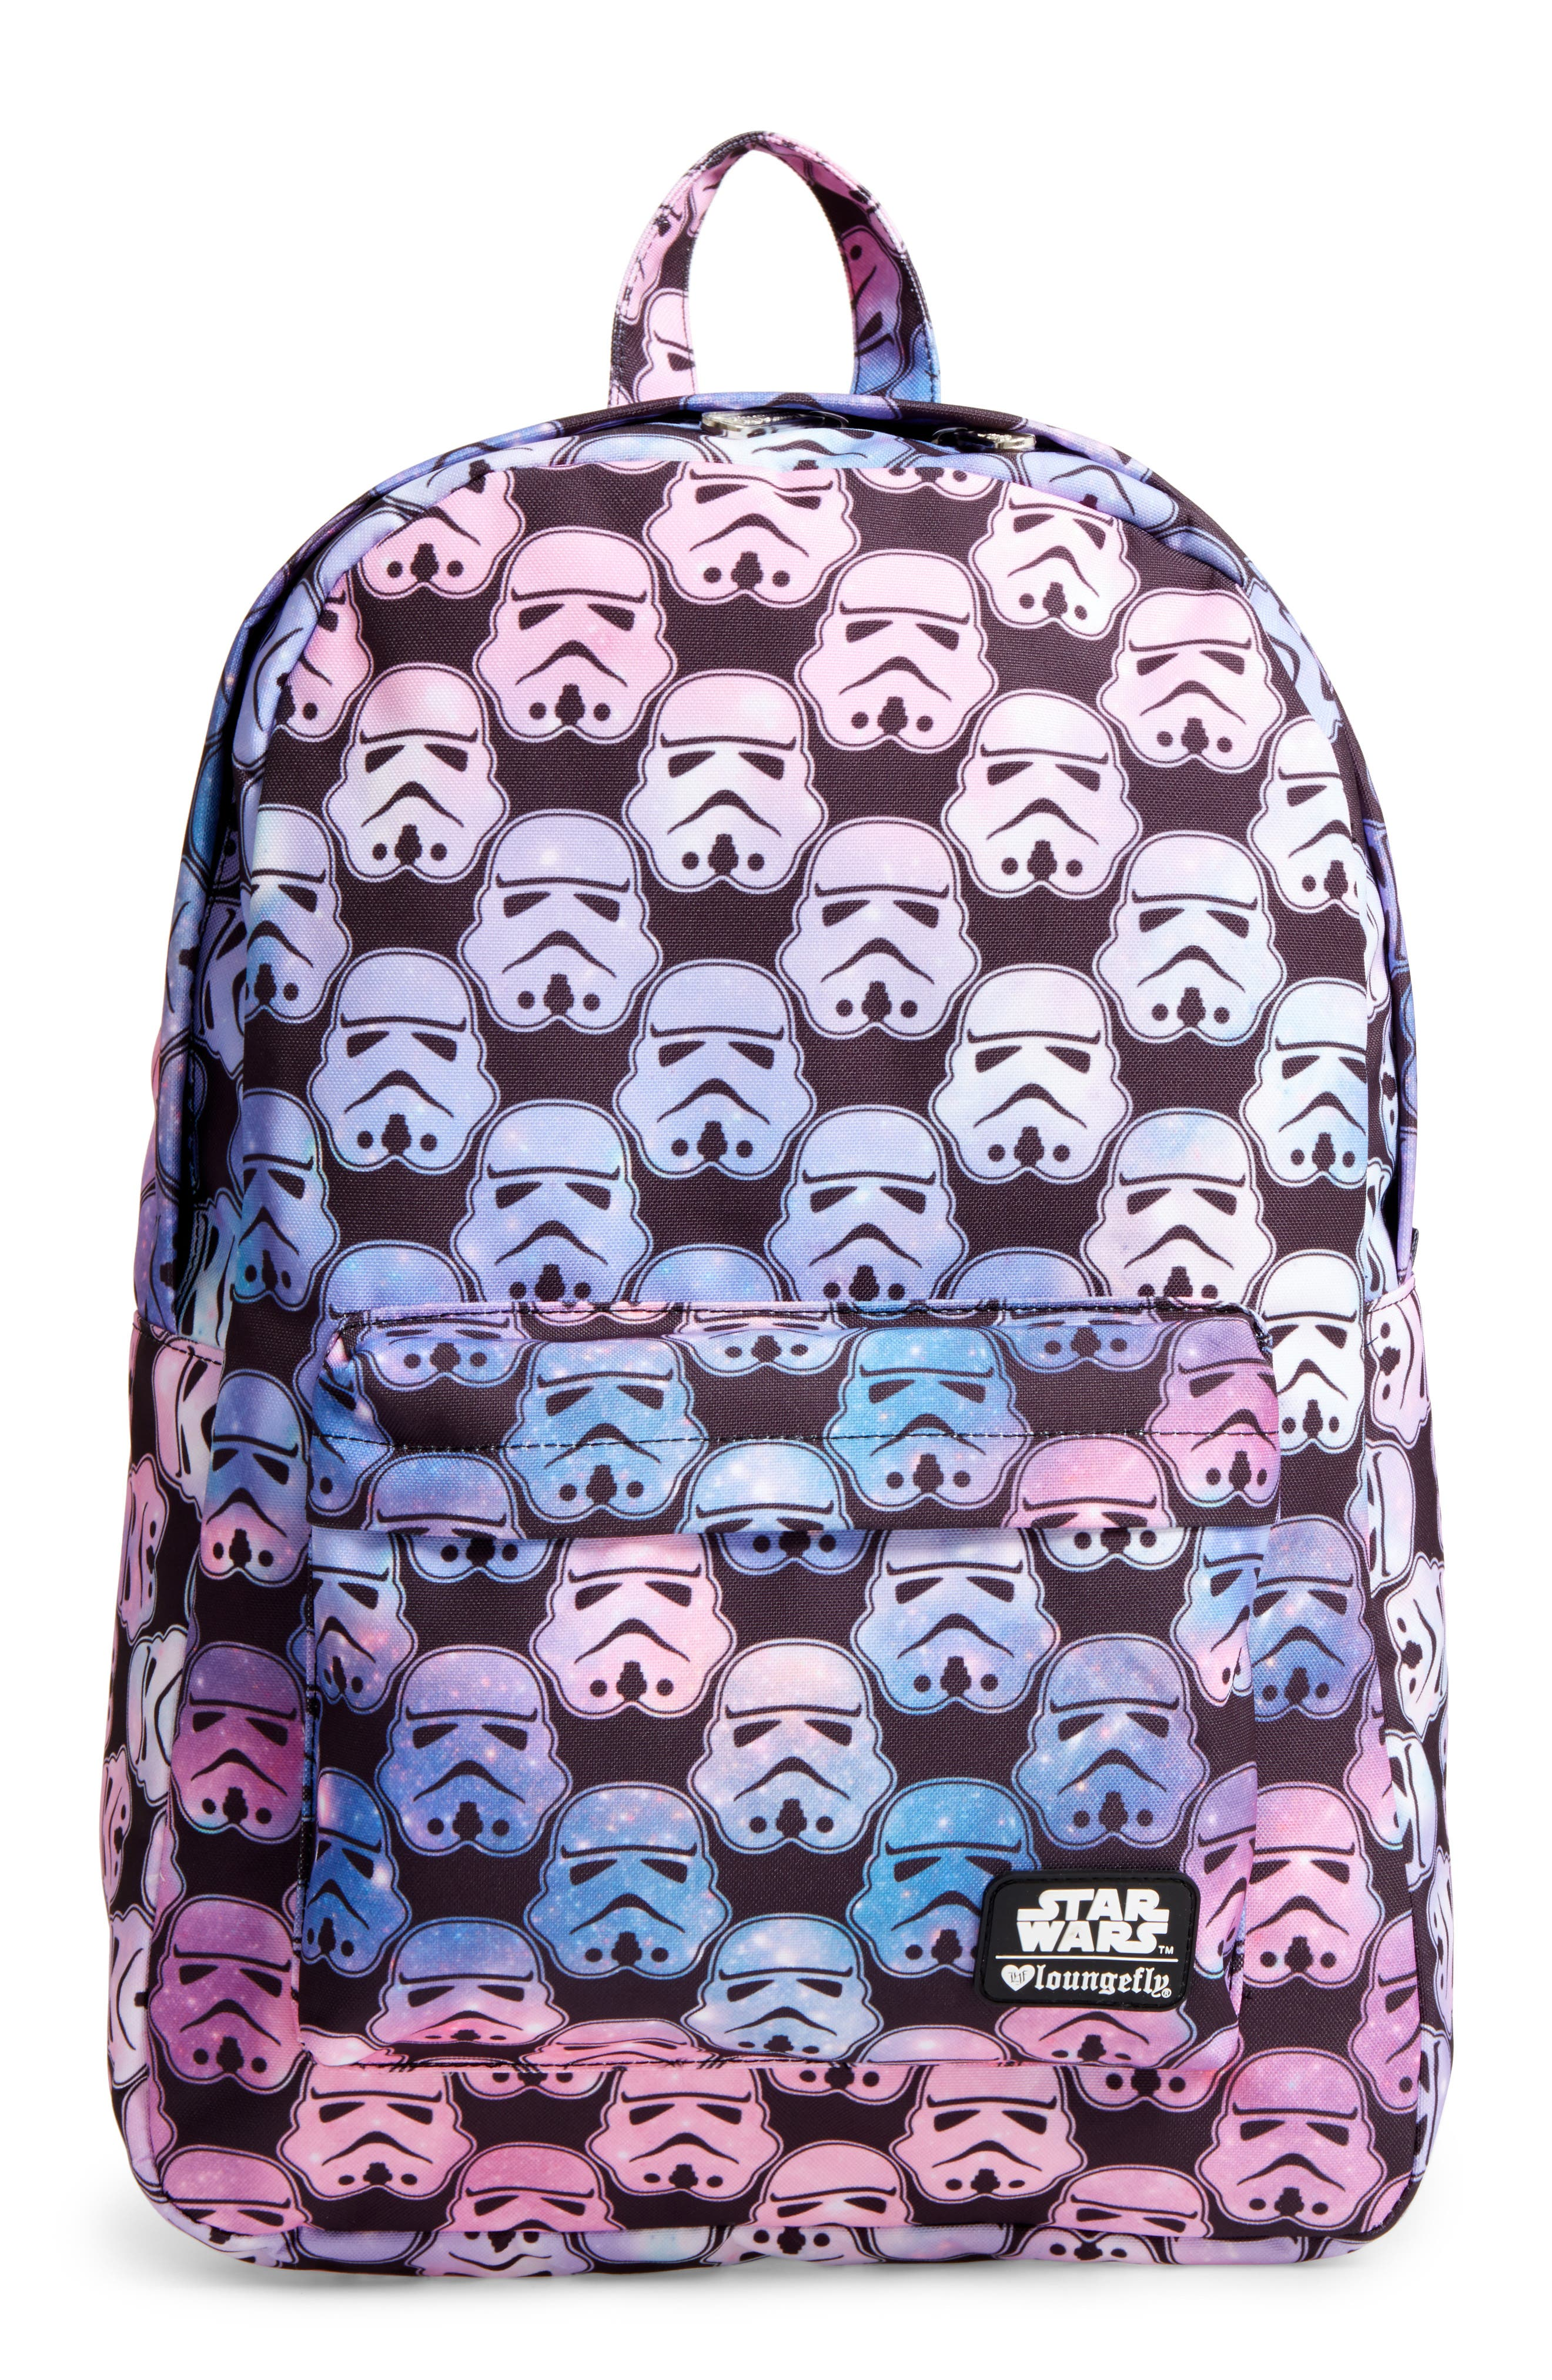 Star Wars<sup>™</sup> Stormtrooper Galaxy Backpack,                         Main,                         color, 001